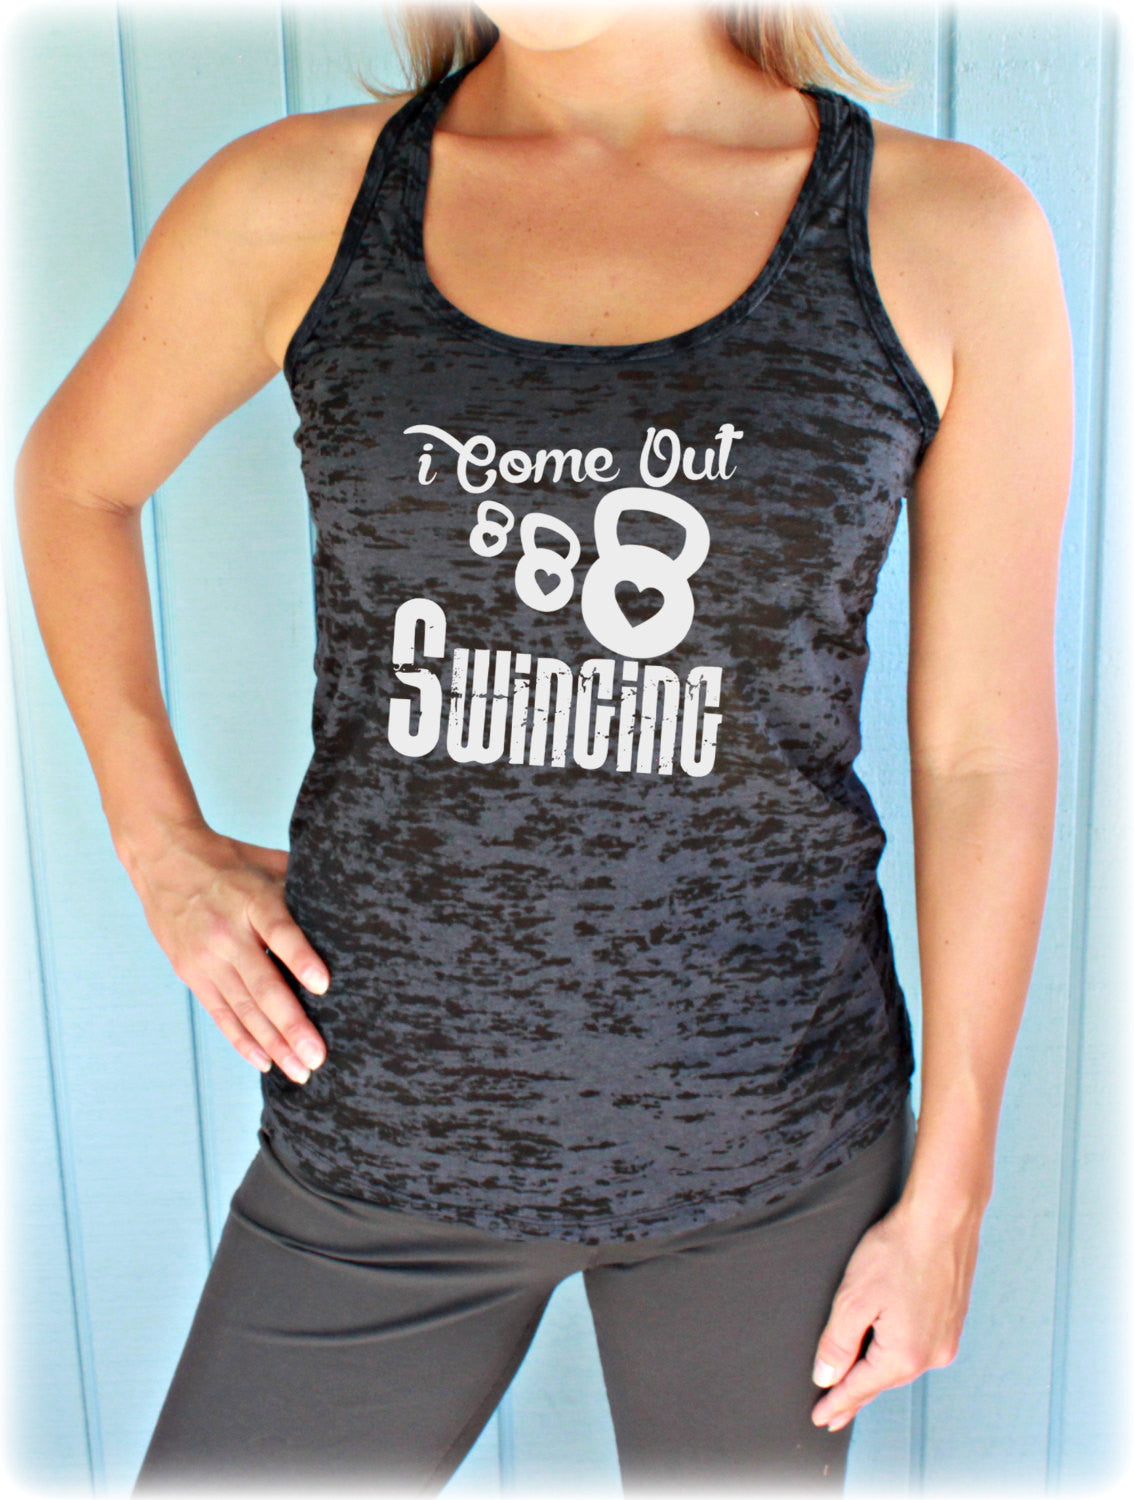 e3f5758ebd3d5 Kettlebell Workout Tank Top. I Come Out Swinging. Cute Womens Workout  Clothing. Gym